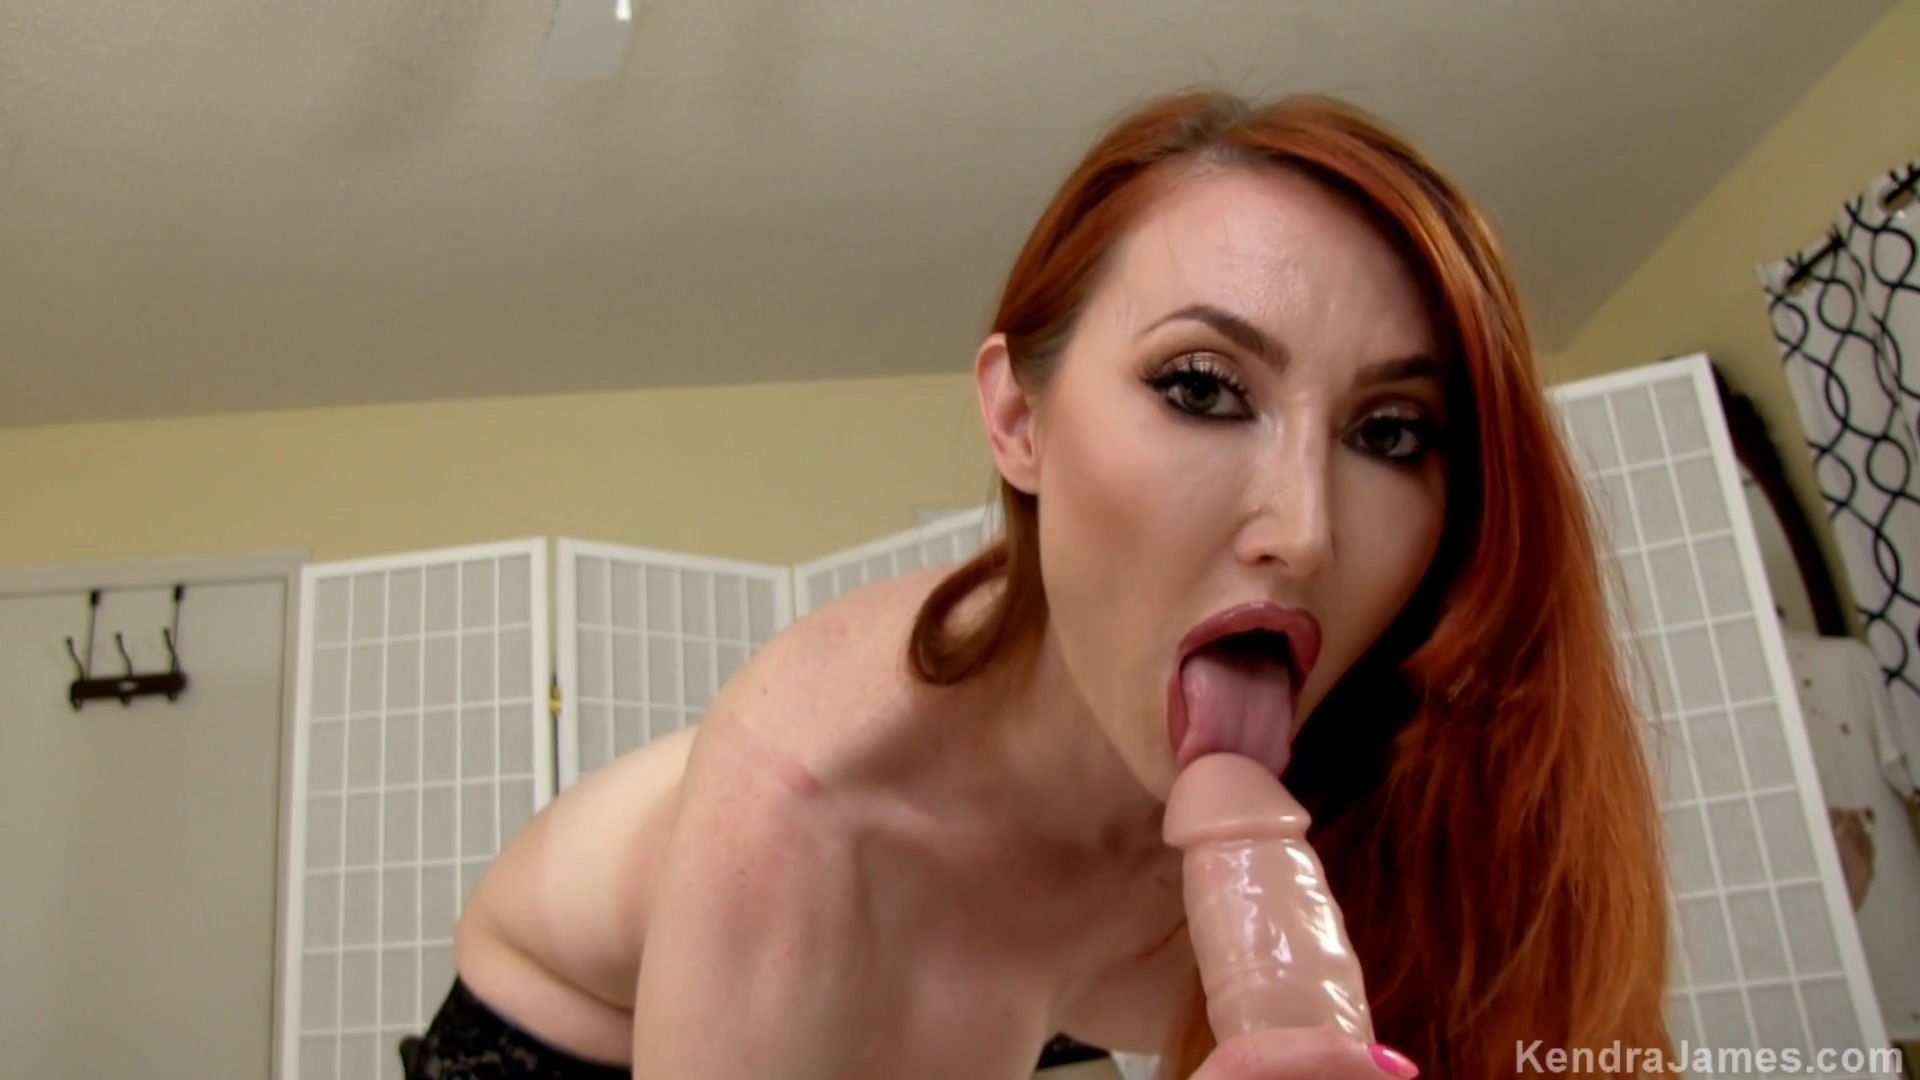 Late Night Domination From Mistress - Kendra James